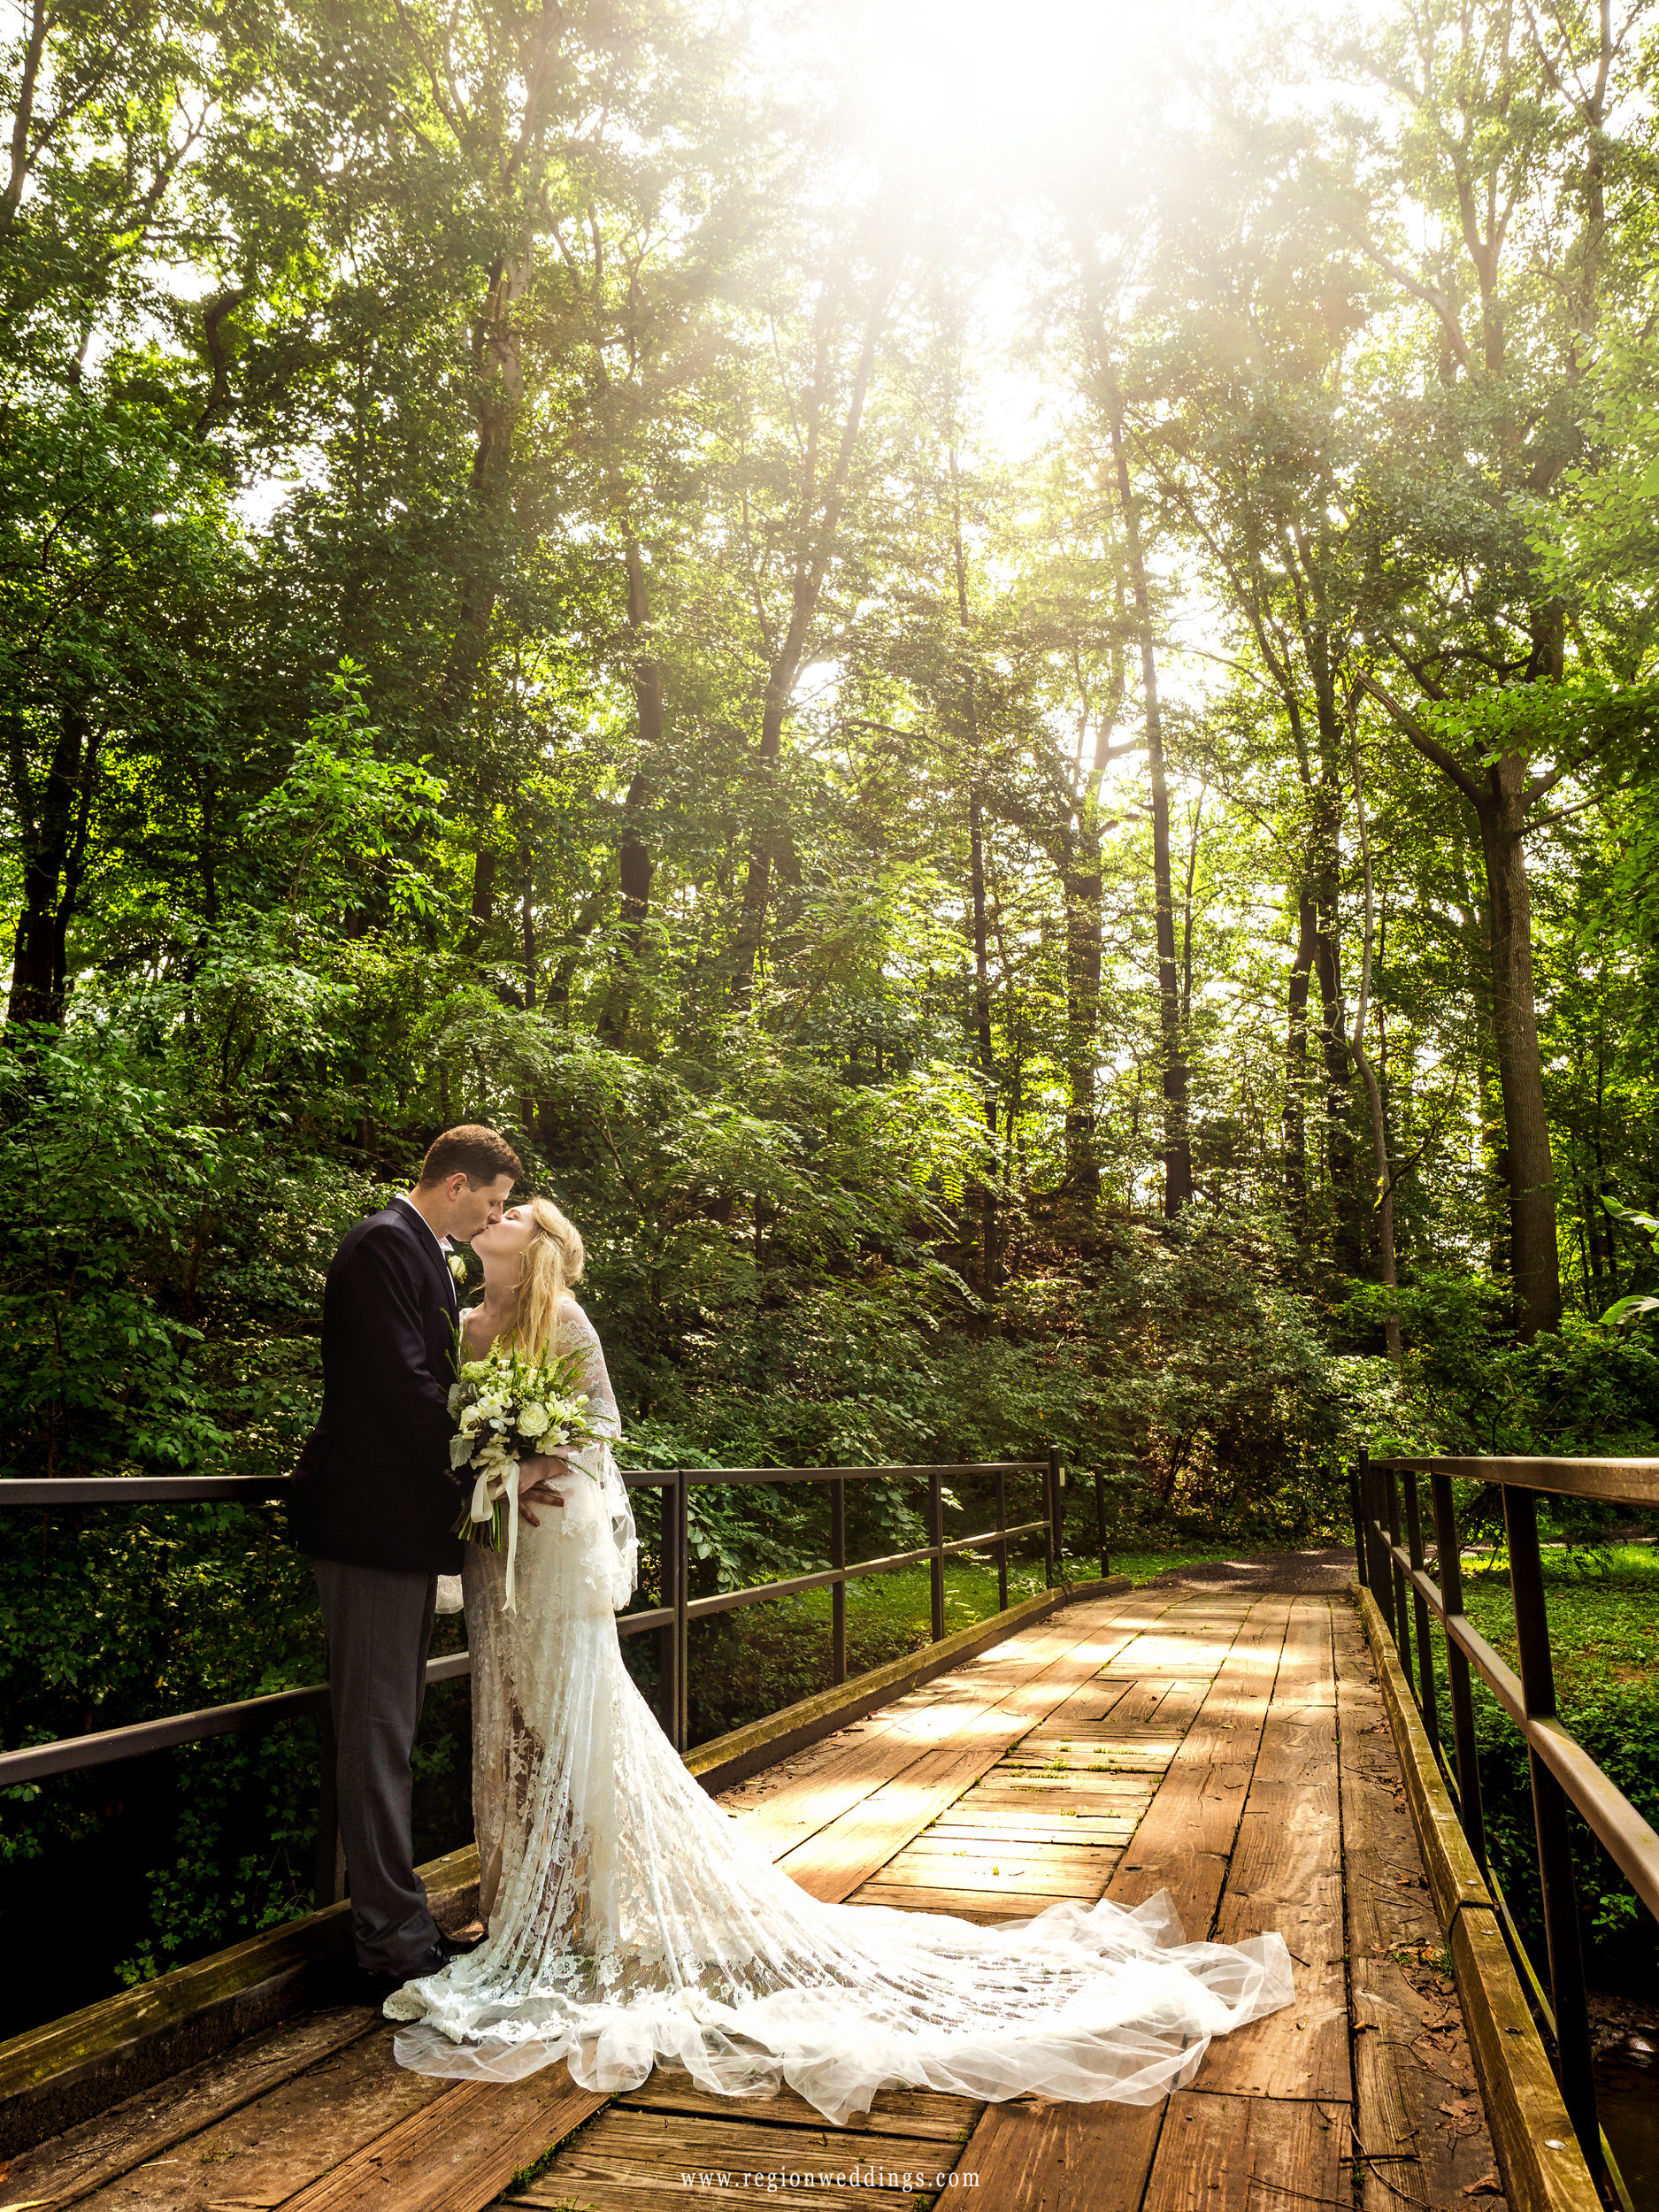 The sun shines down upon the bride and groom at Friendship Garden on their wedding day.